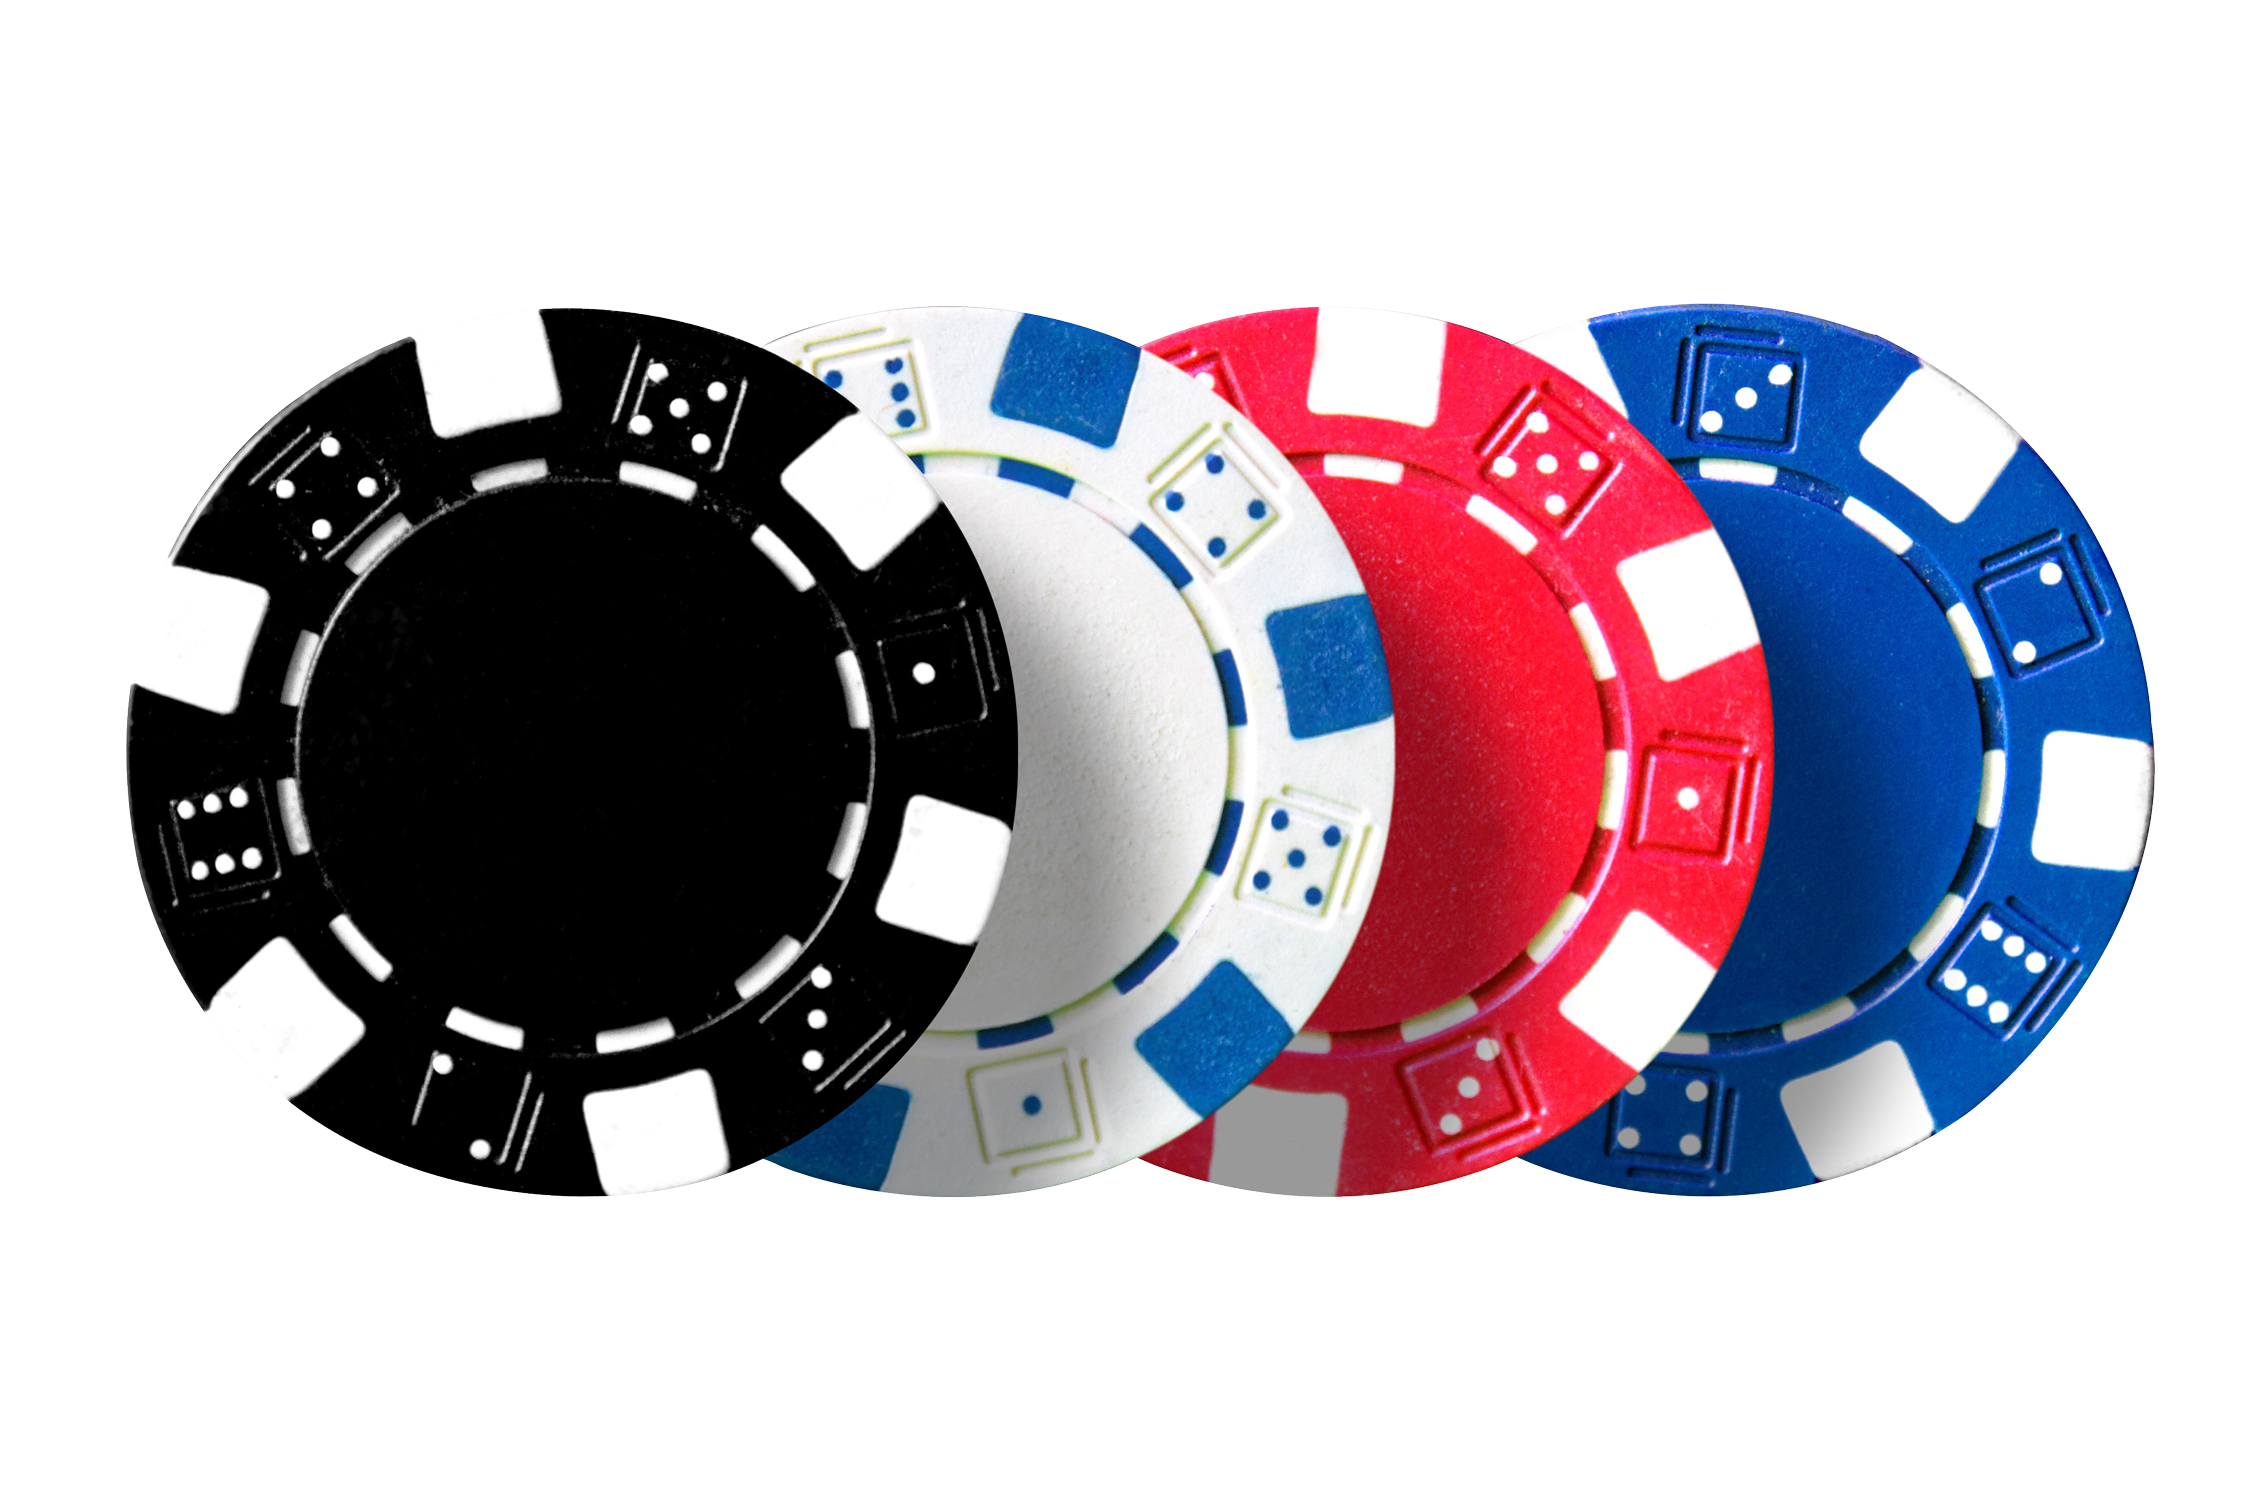 vector Las vegas clipart poker chip. Stock photos images royalty